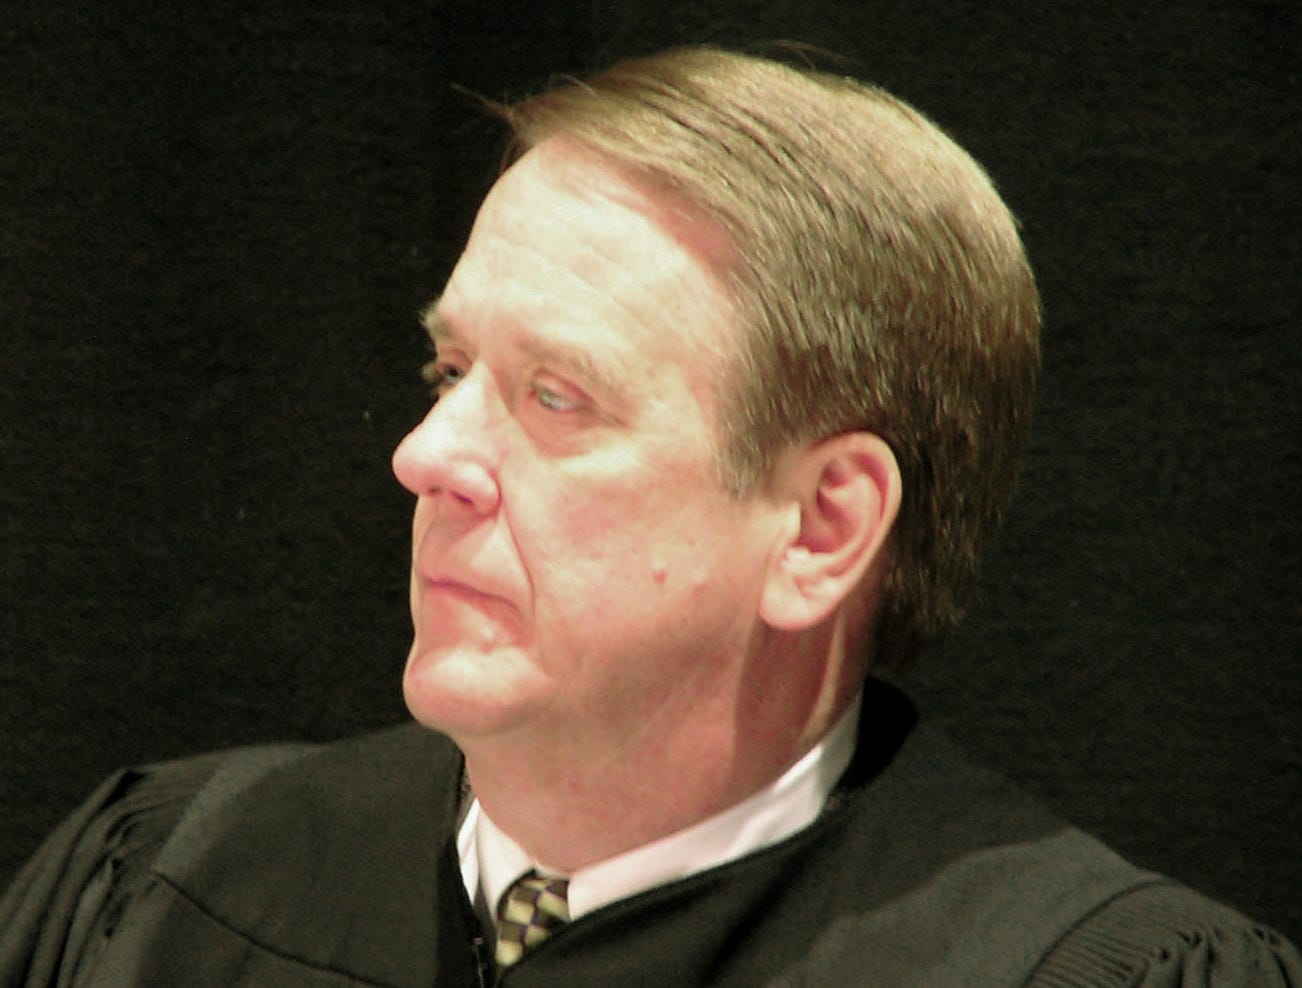 ** FILE ** State Supreme Court Justice Steven Zinter, shown in this file photo taken Oct. 8, 2003, at Yankton, S.D., sided with the high court majority on Thursday, Jan. 8, 2004, in a case involving worker's compensation. The justices ruled that Jennifer Cantalope is entitled to benefits for a severe asthma attack caused by cigar smoking in a bar where she was working. The case was argued in front of the court at Yankton in October. (AP Photo/Joe Kafka, File)